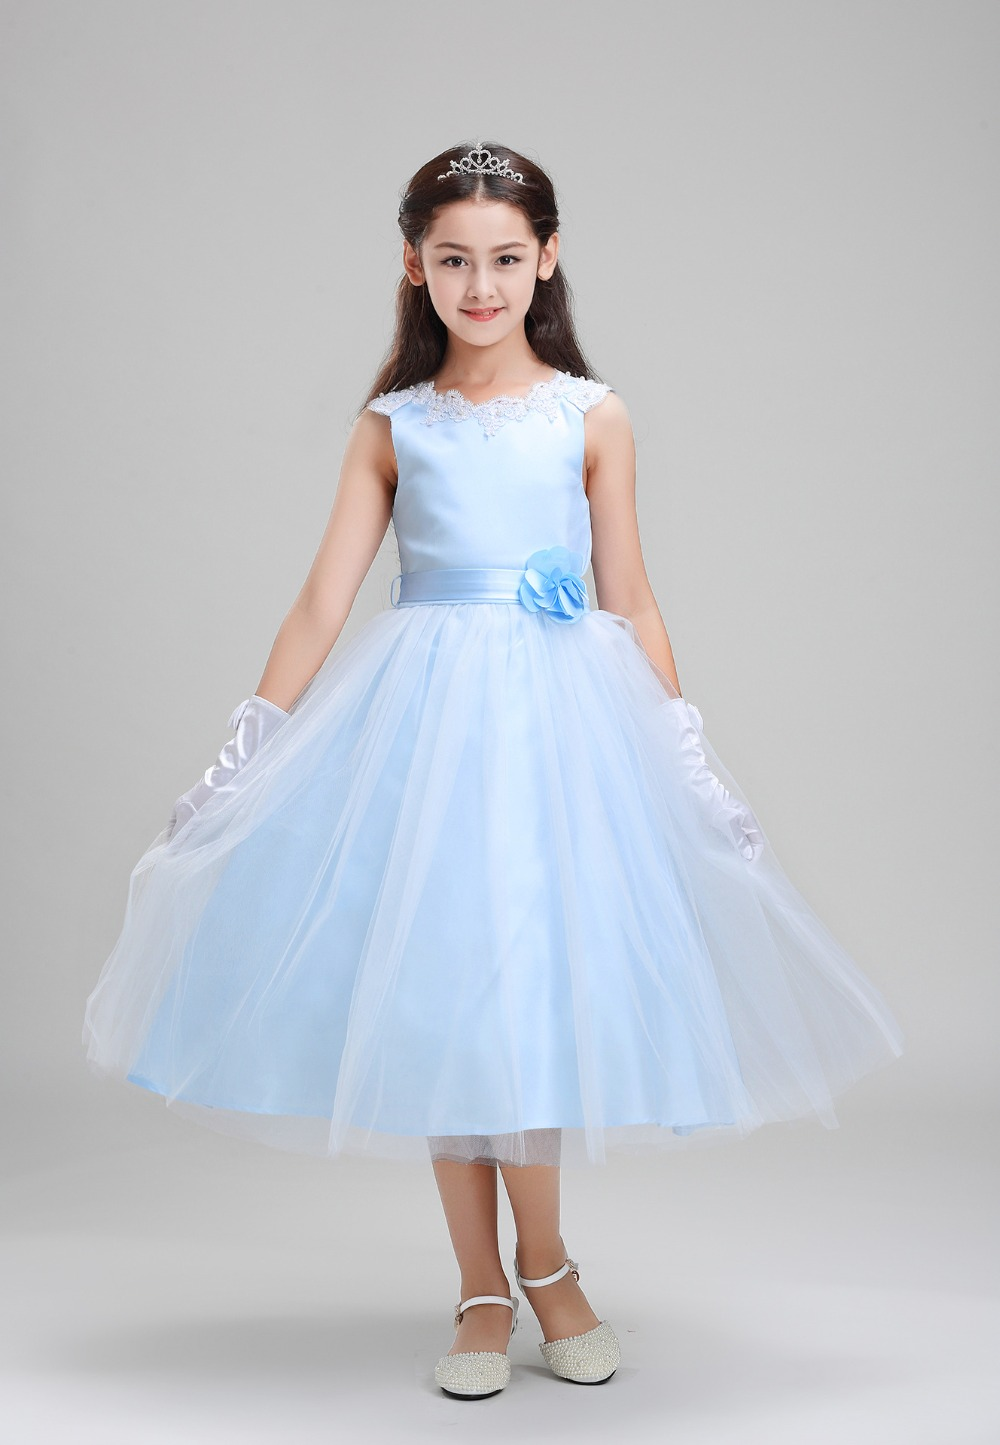 2016 new blue flower girl dresses long party pageant